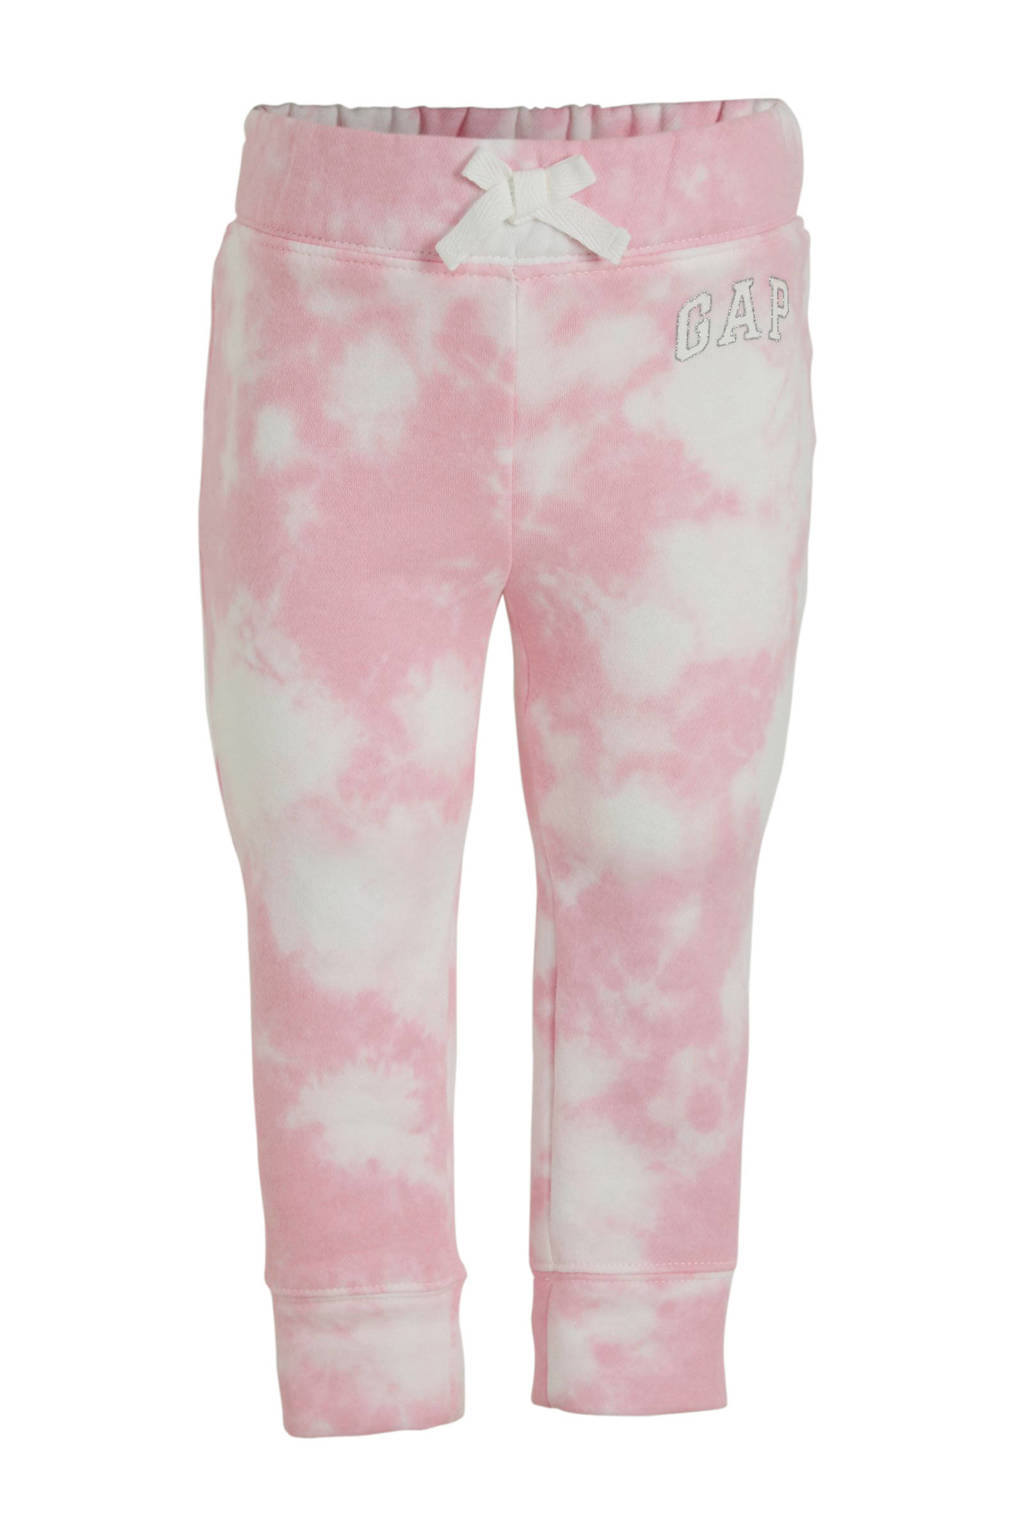 GAP broek met all over print roze/wit, Roze/wit